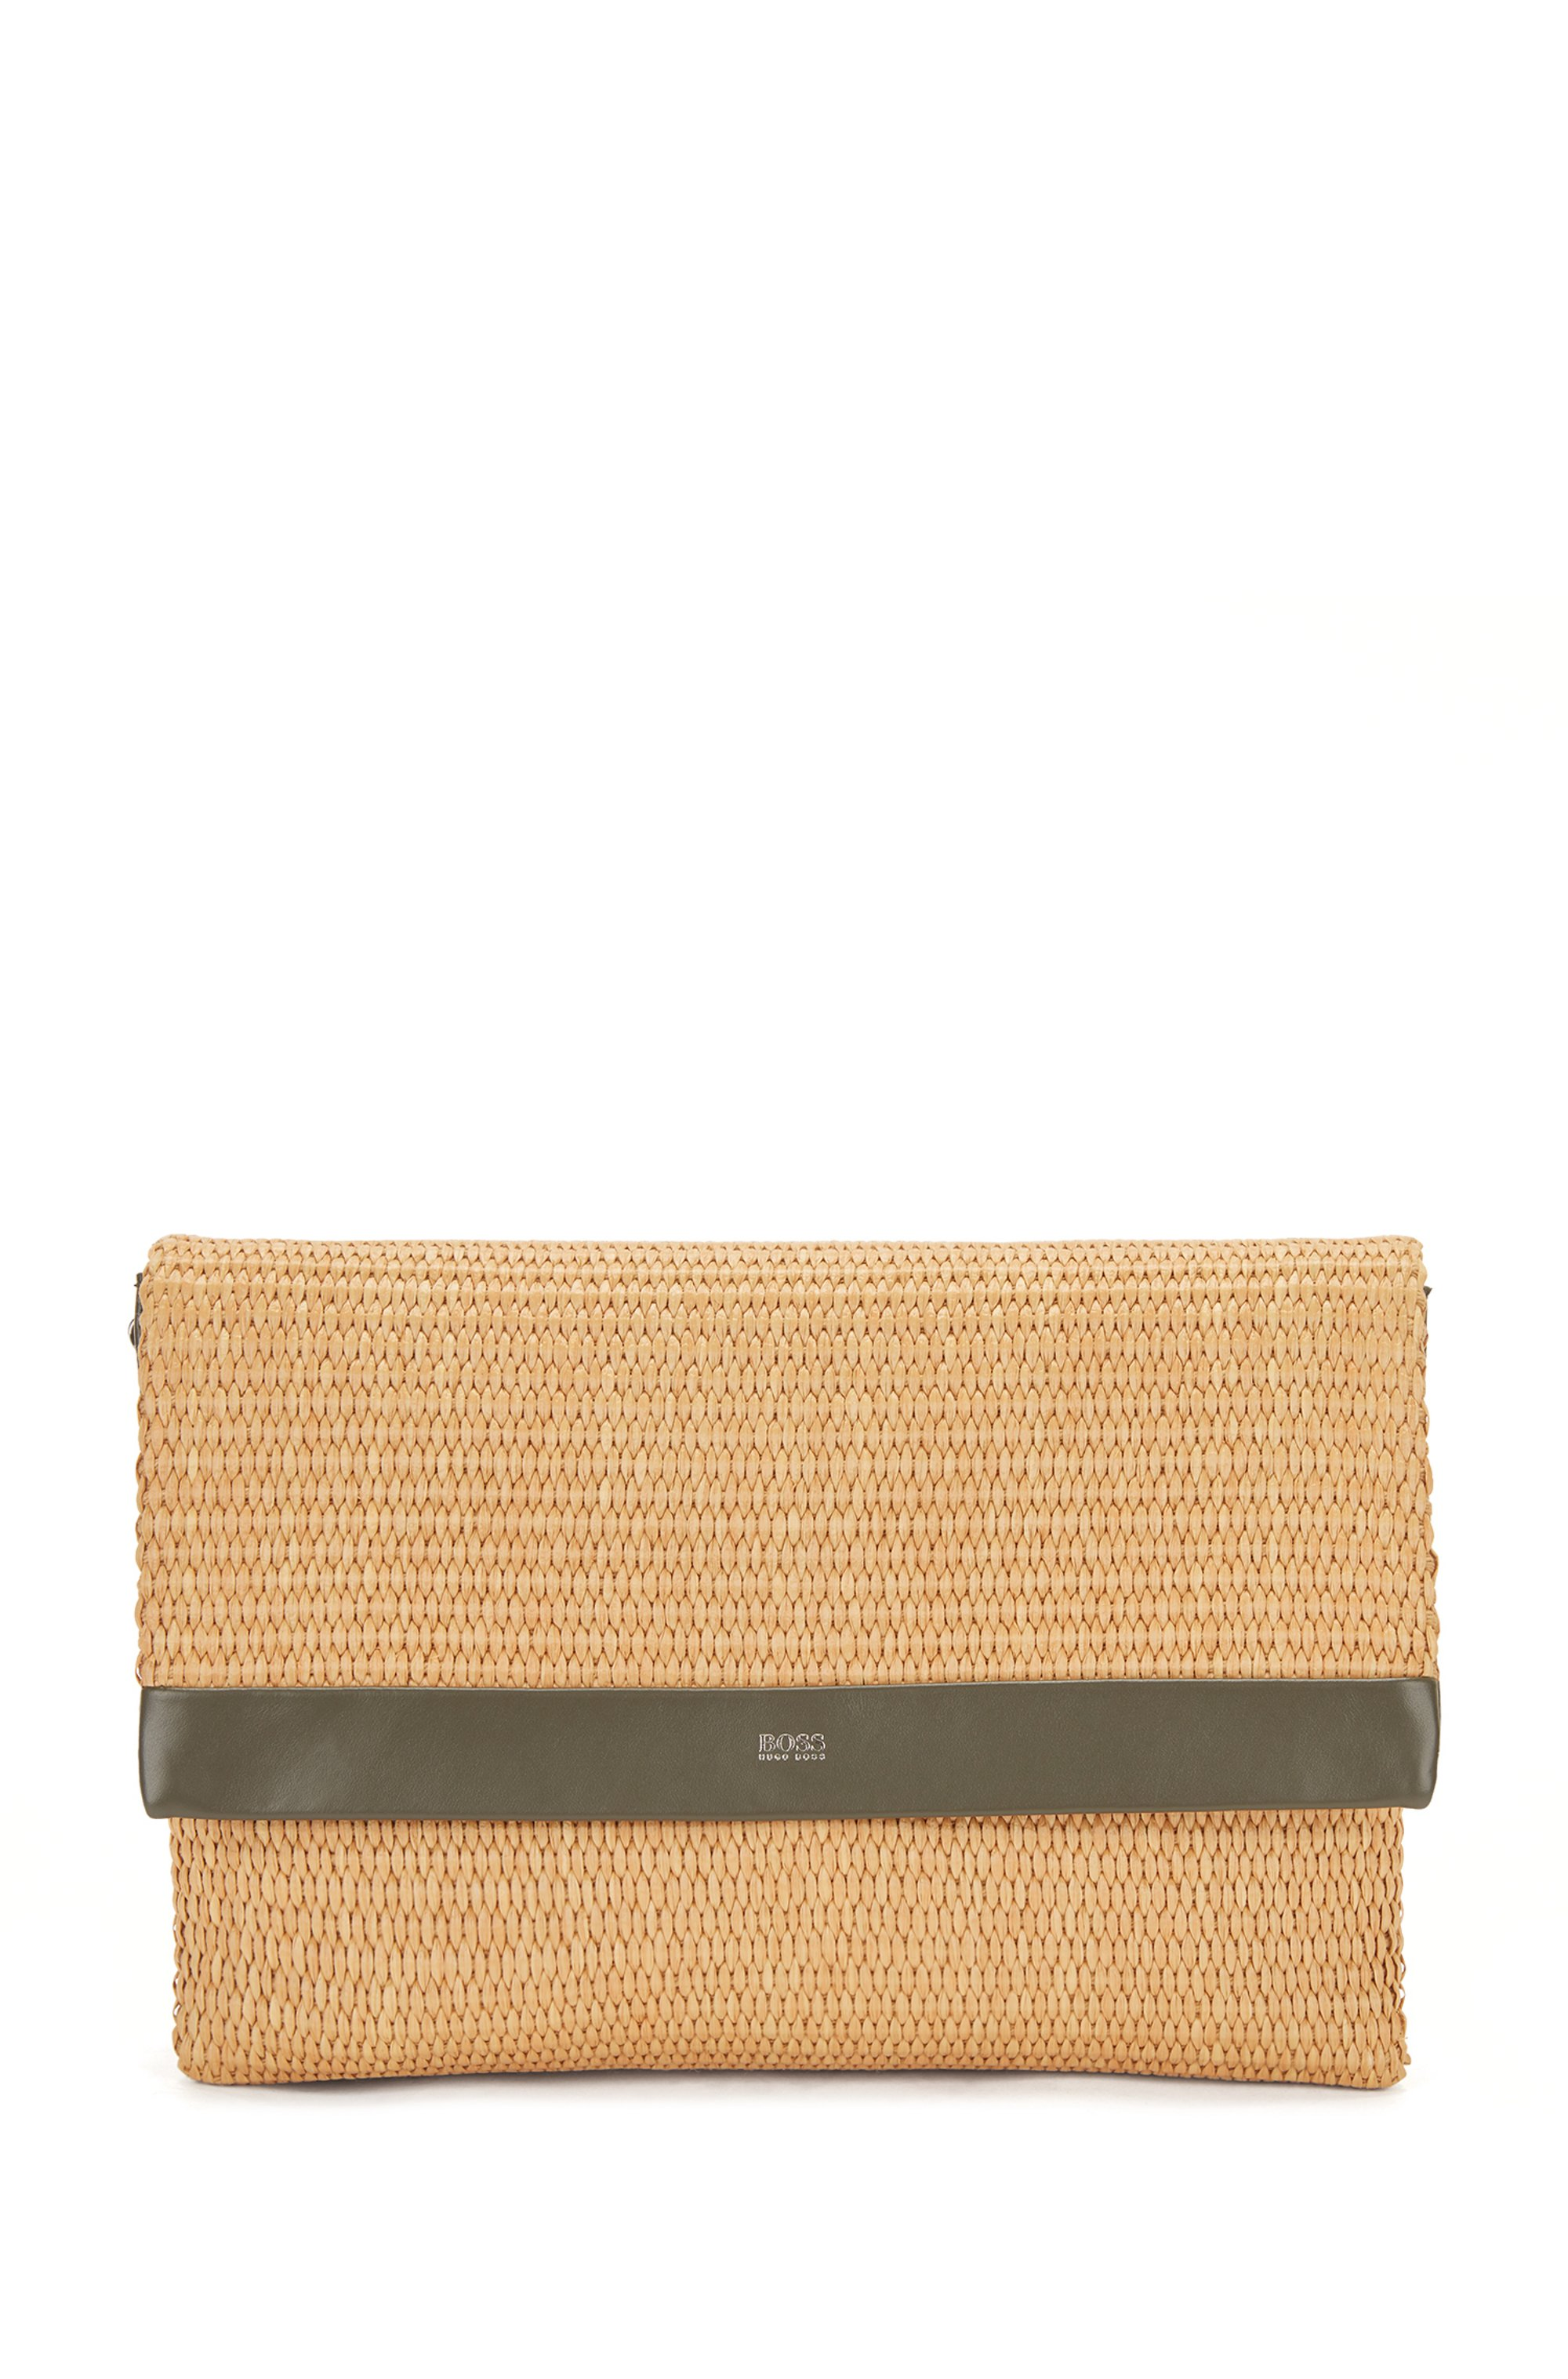 Raffia clutch bag with leather trims and chain strap, Beige